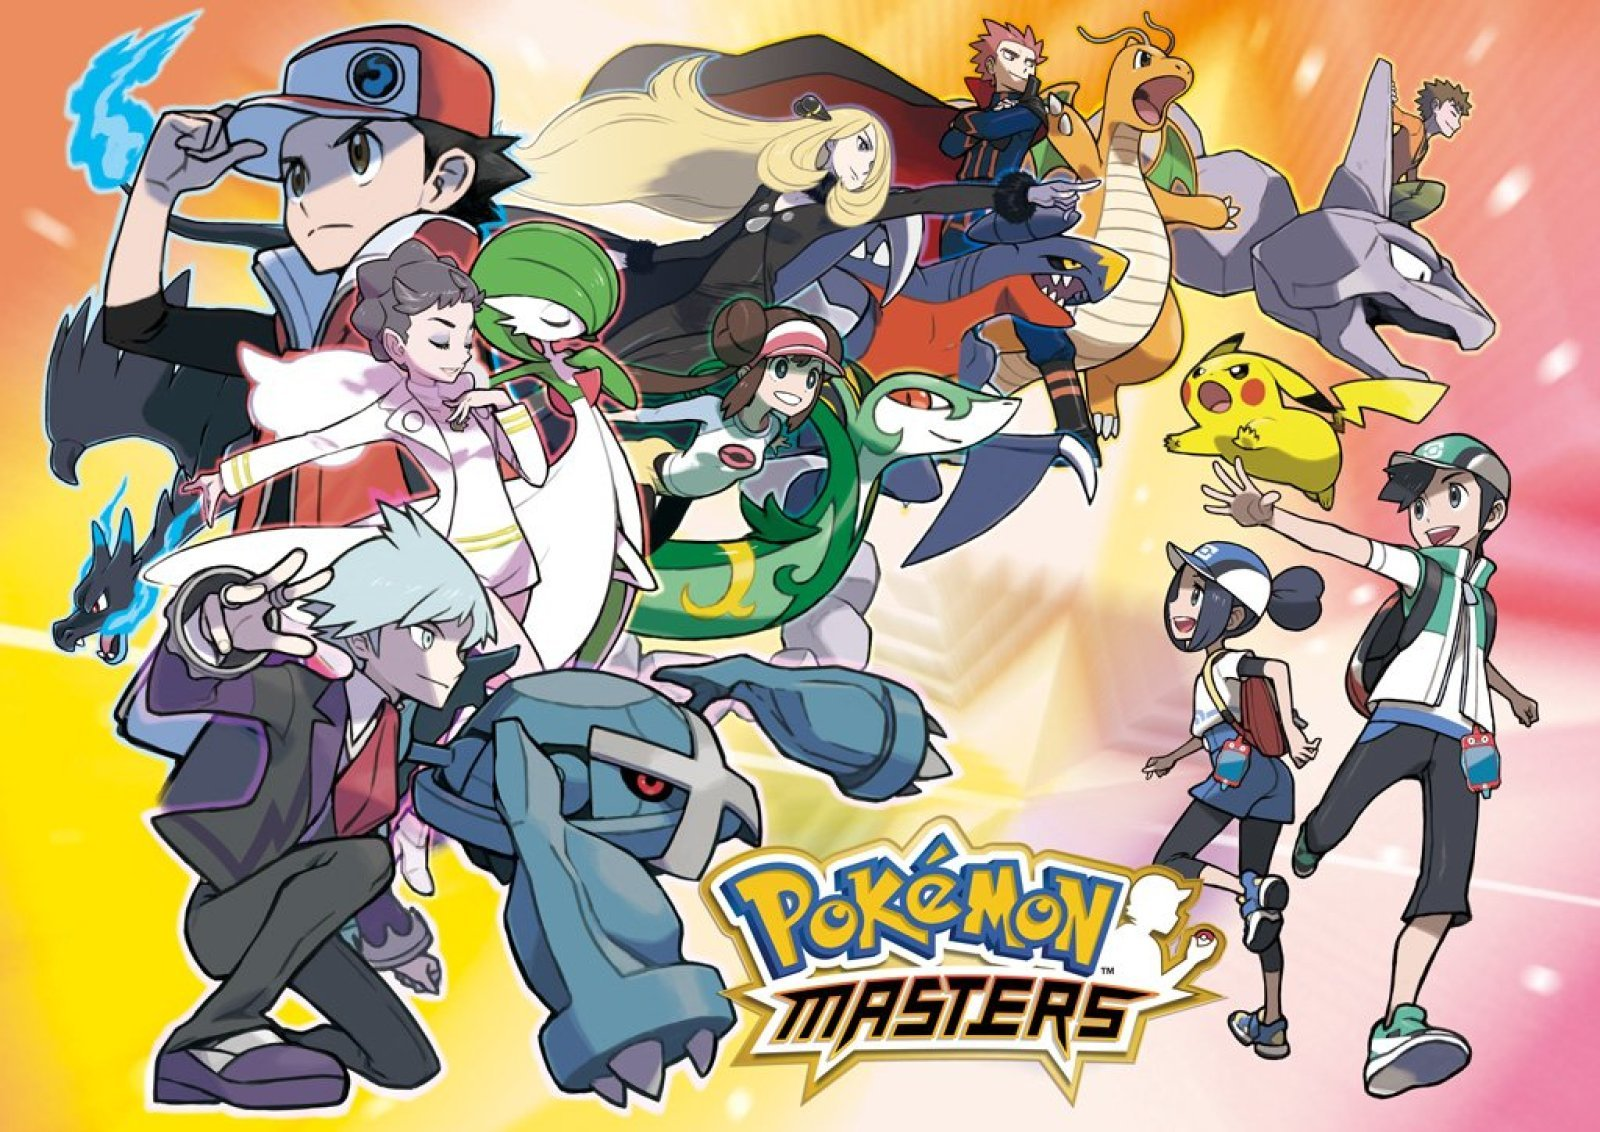 Upcoming 'Pokémon Masters' Mobile Game Set to Release This Summer